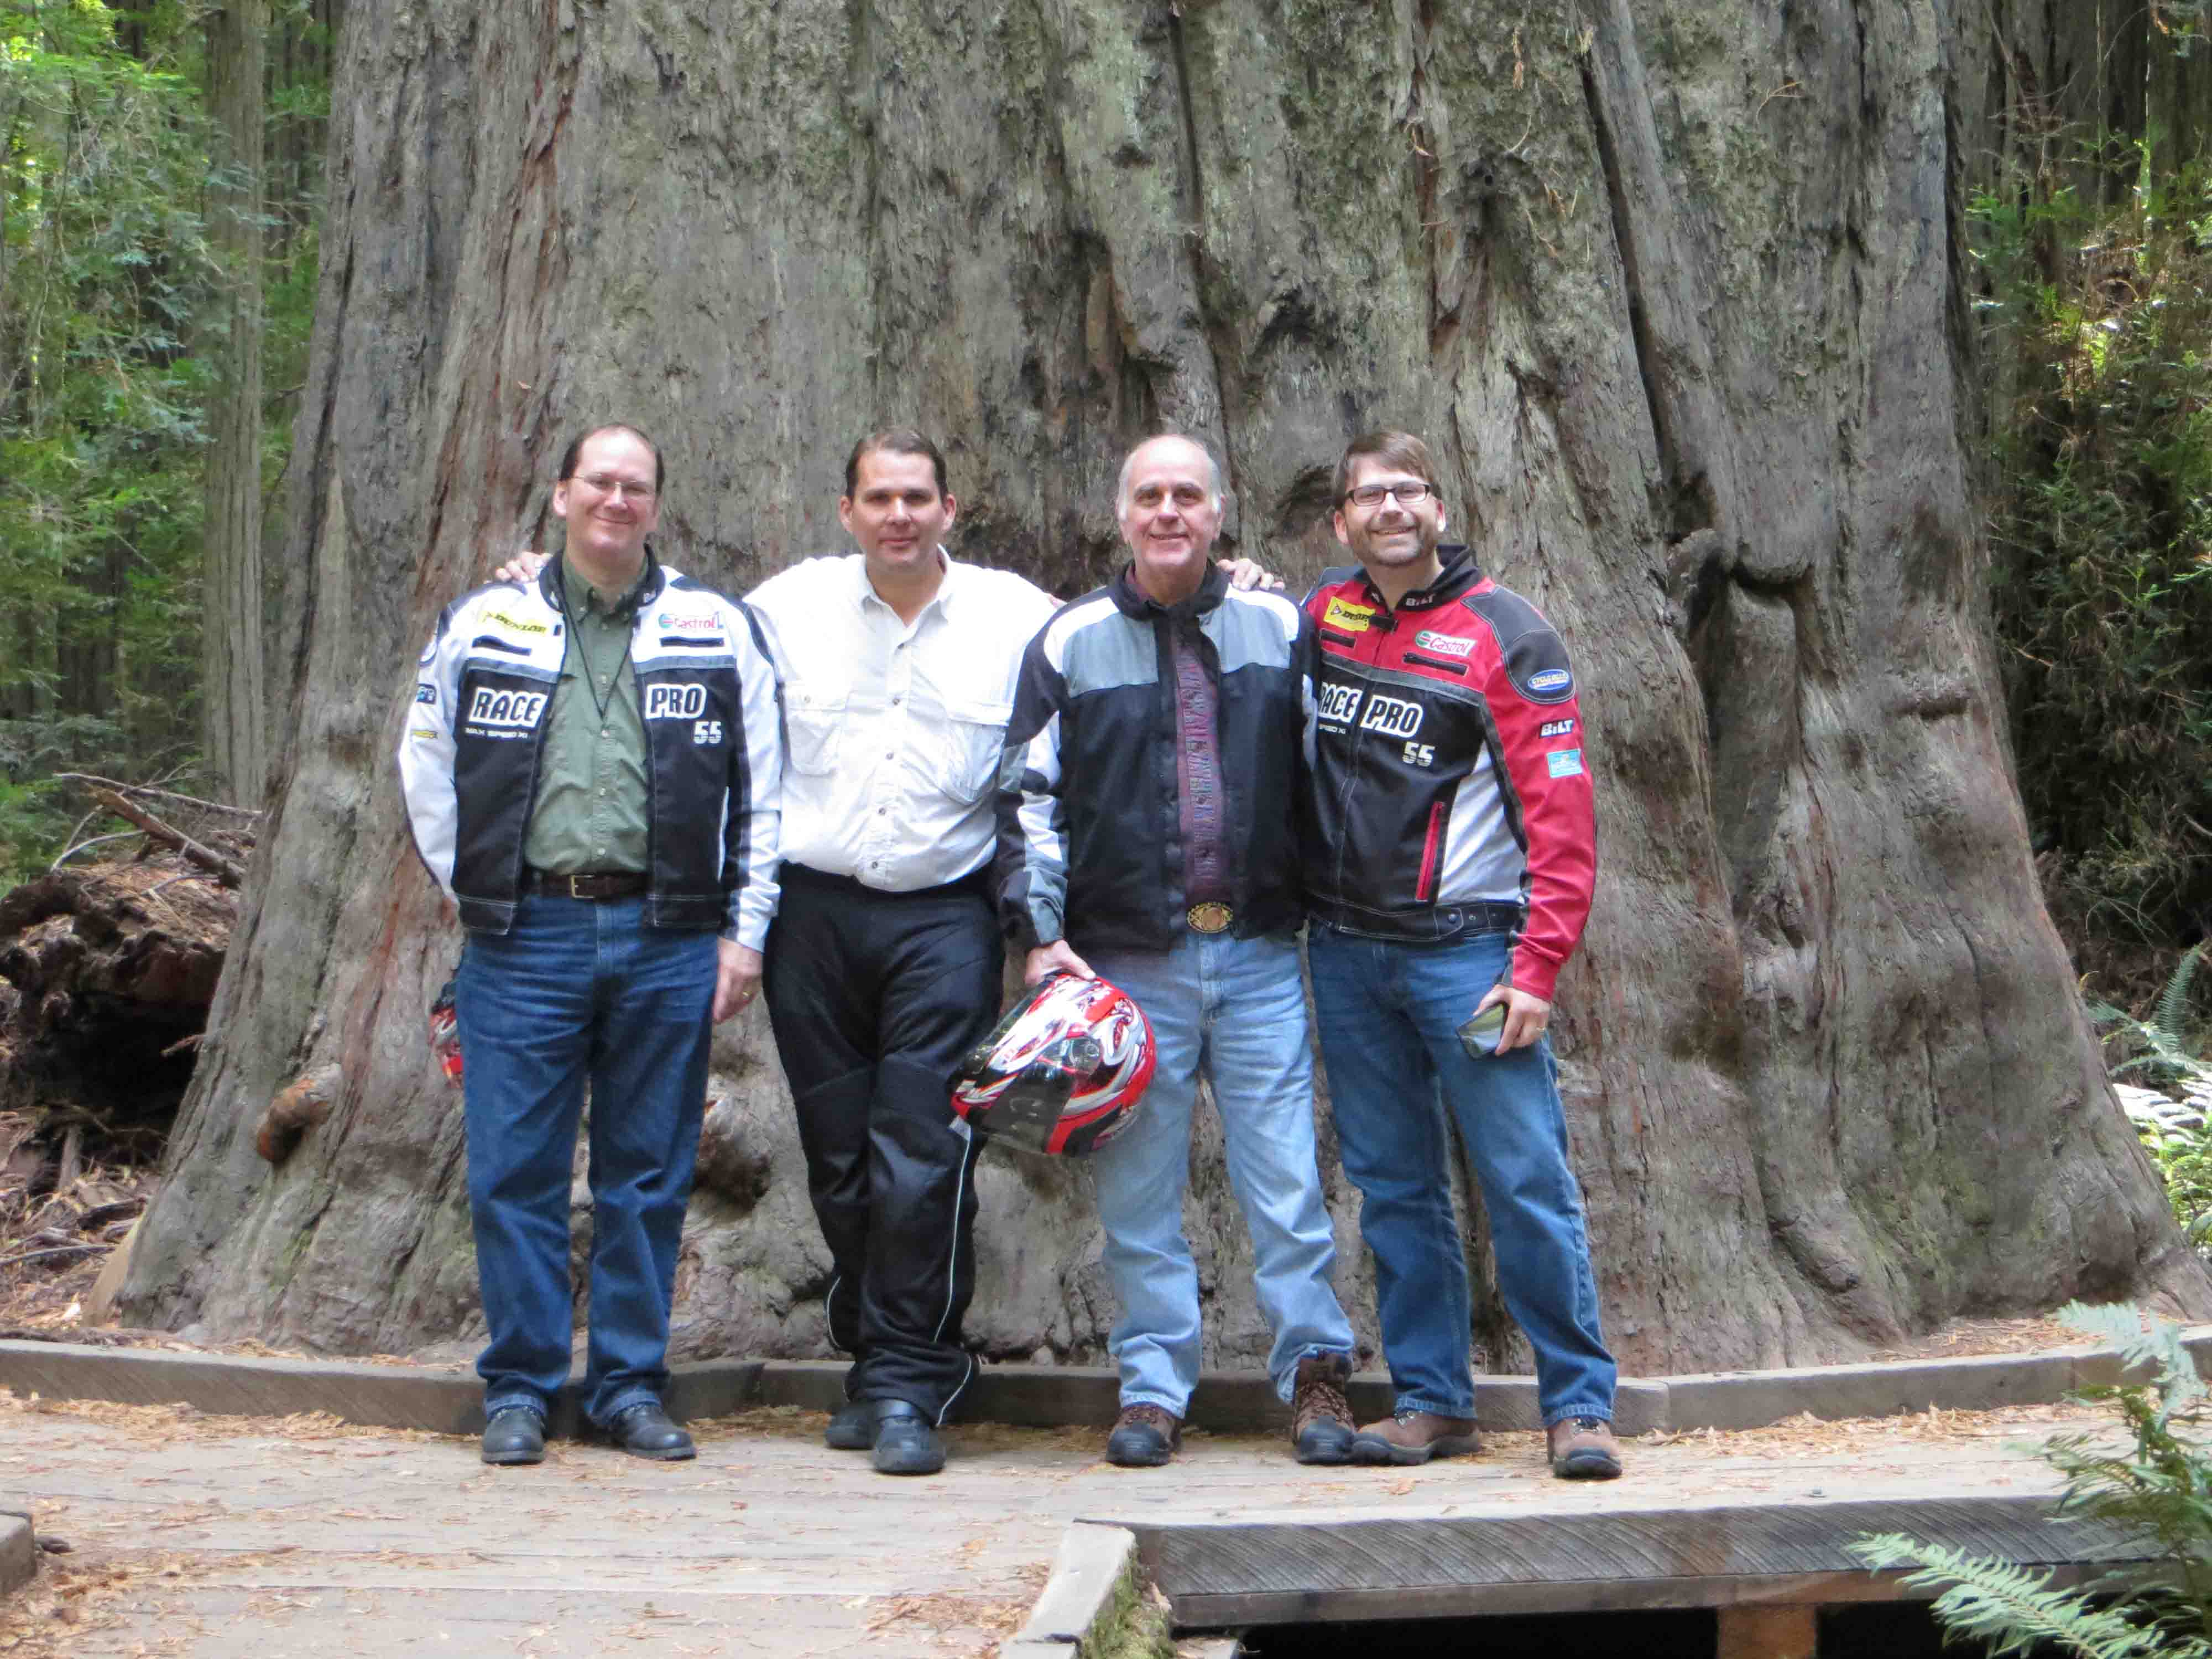 Family in front of giant redwood tree